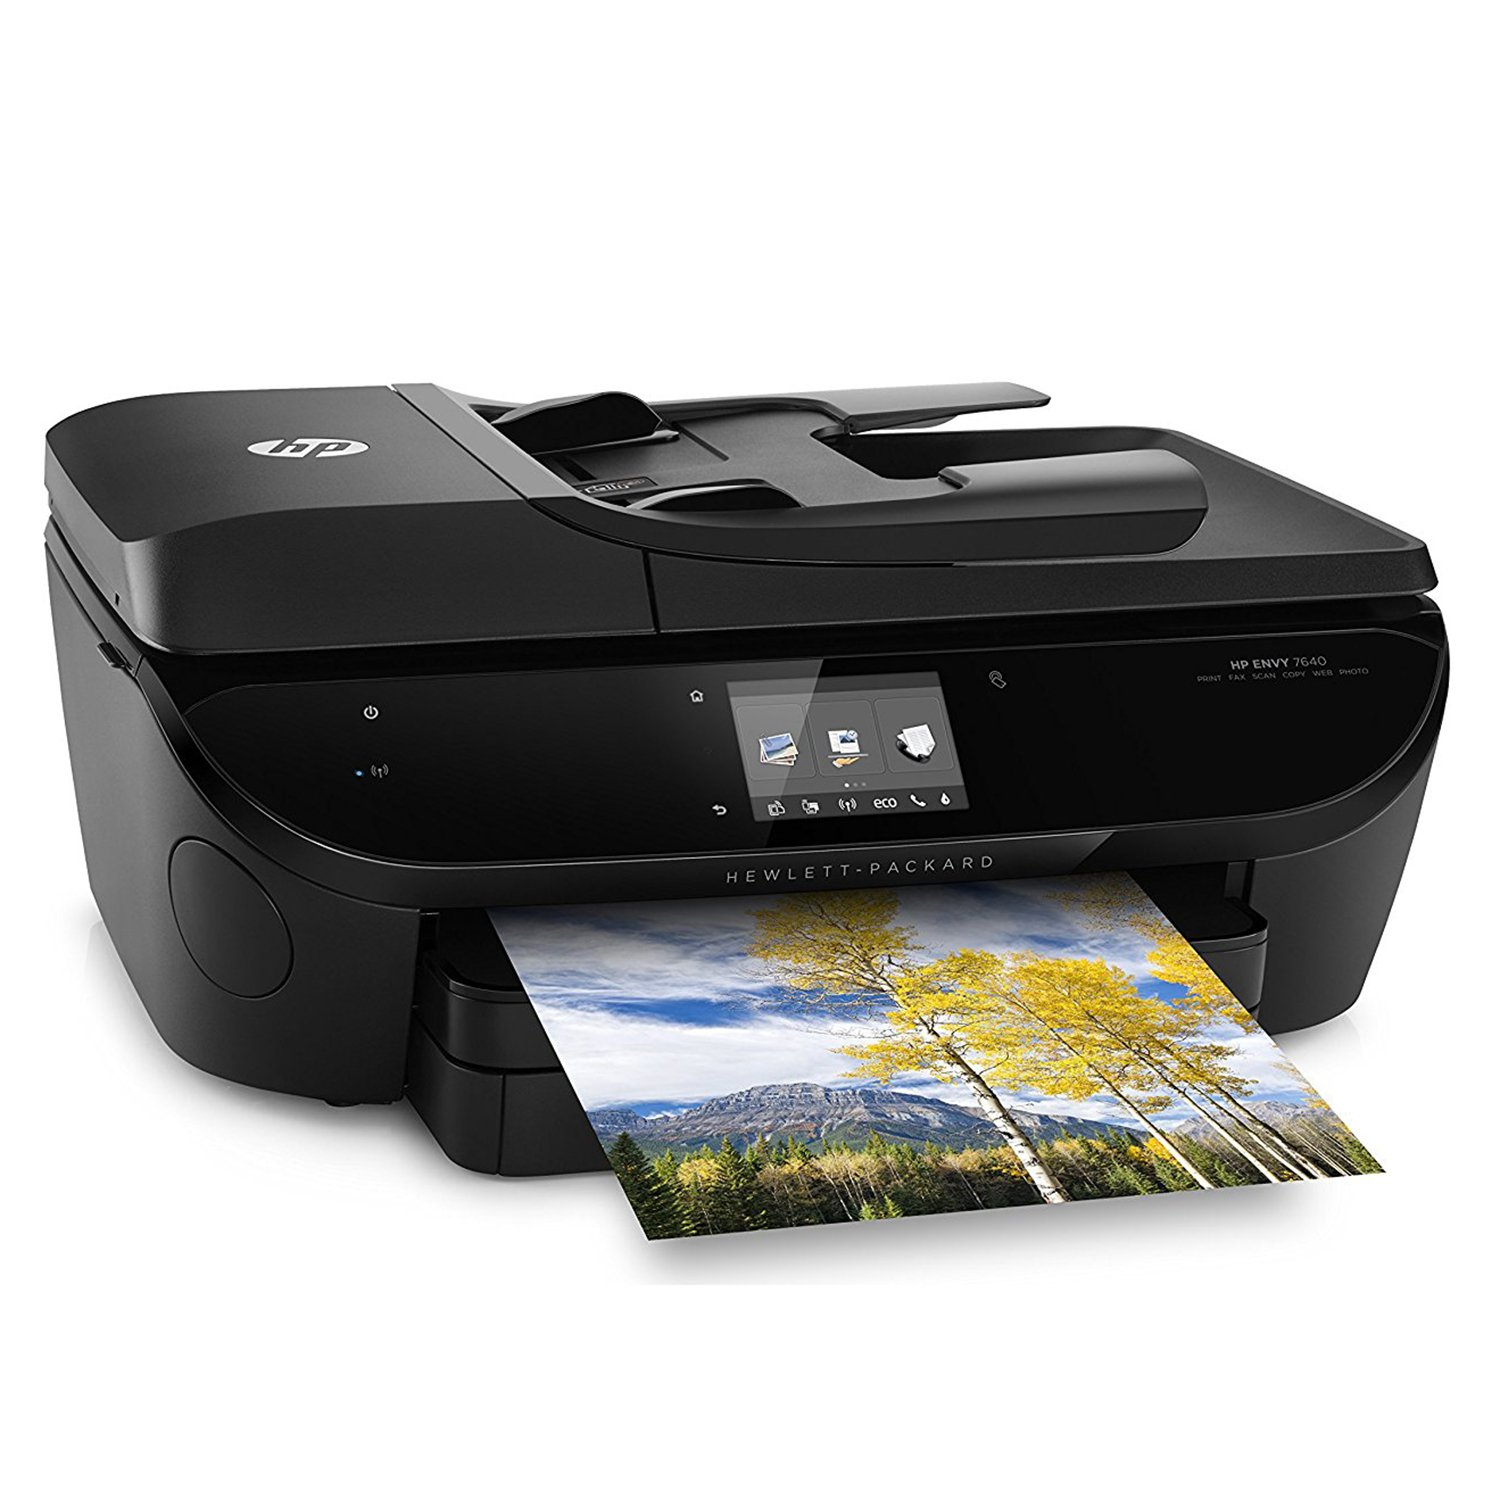 11 Best Wireless All-In-One Printers for Home and Business » Planet ...